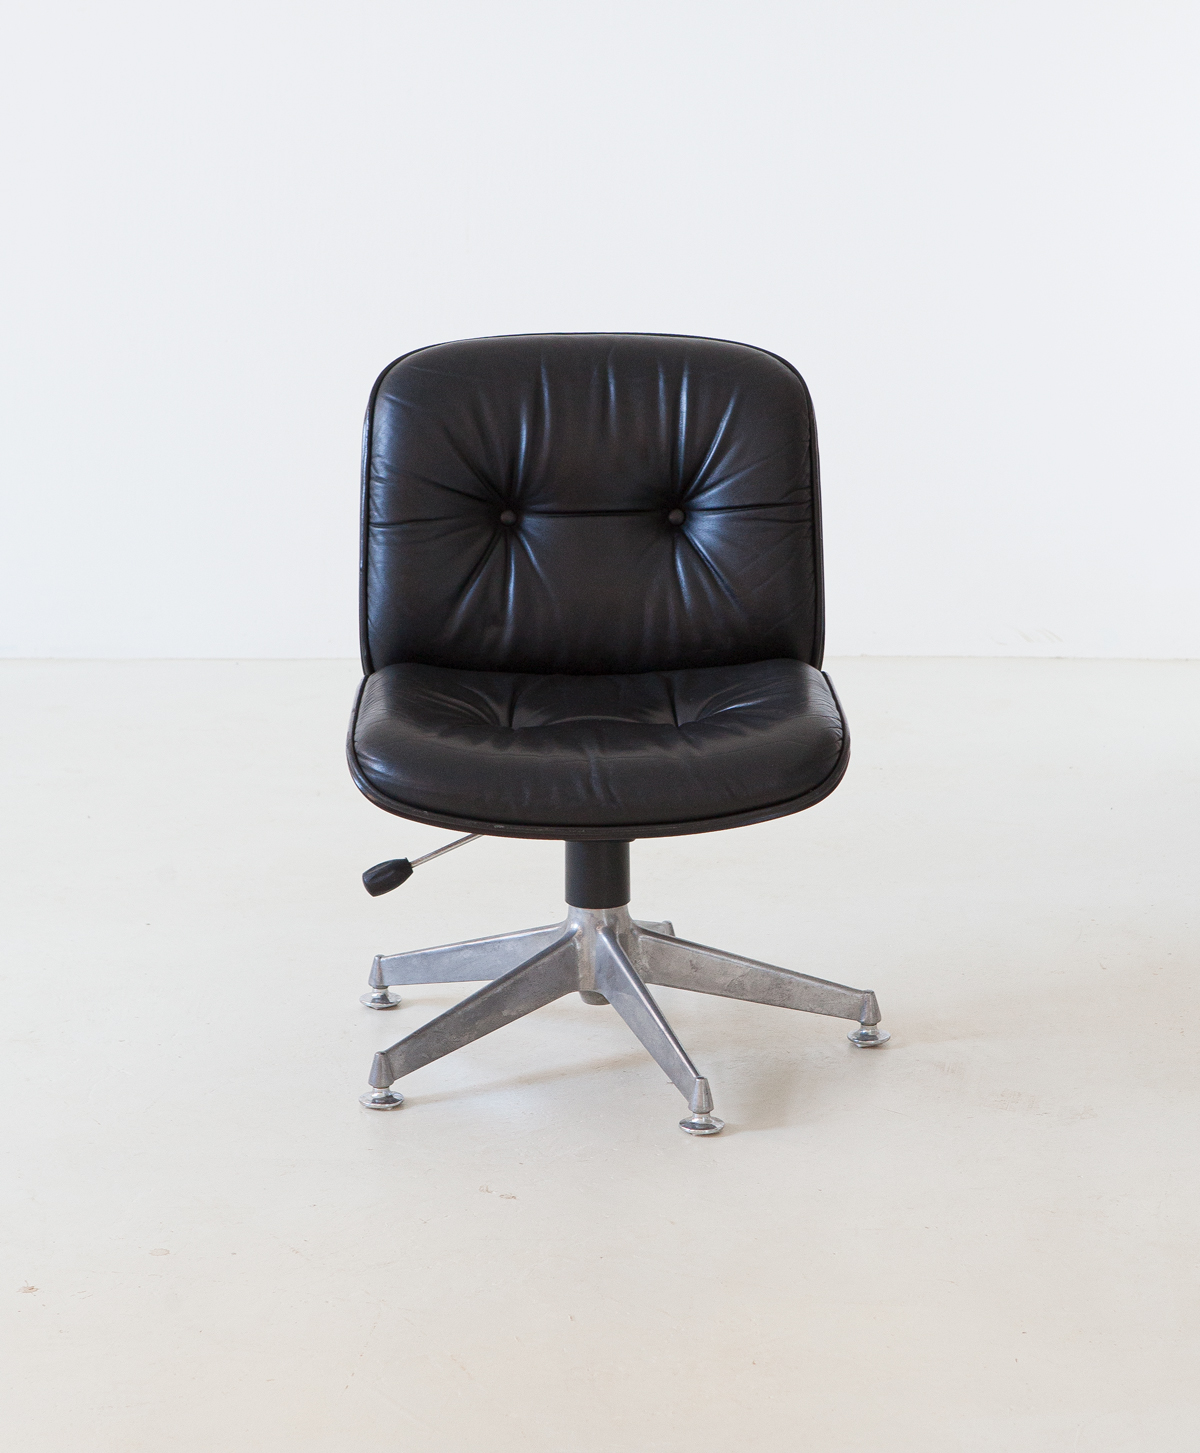 italian-leather-swivel-chair-by-ico-parisi-for-mim-3-se326